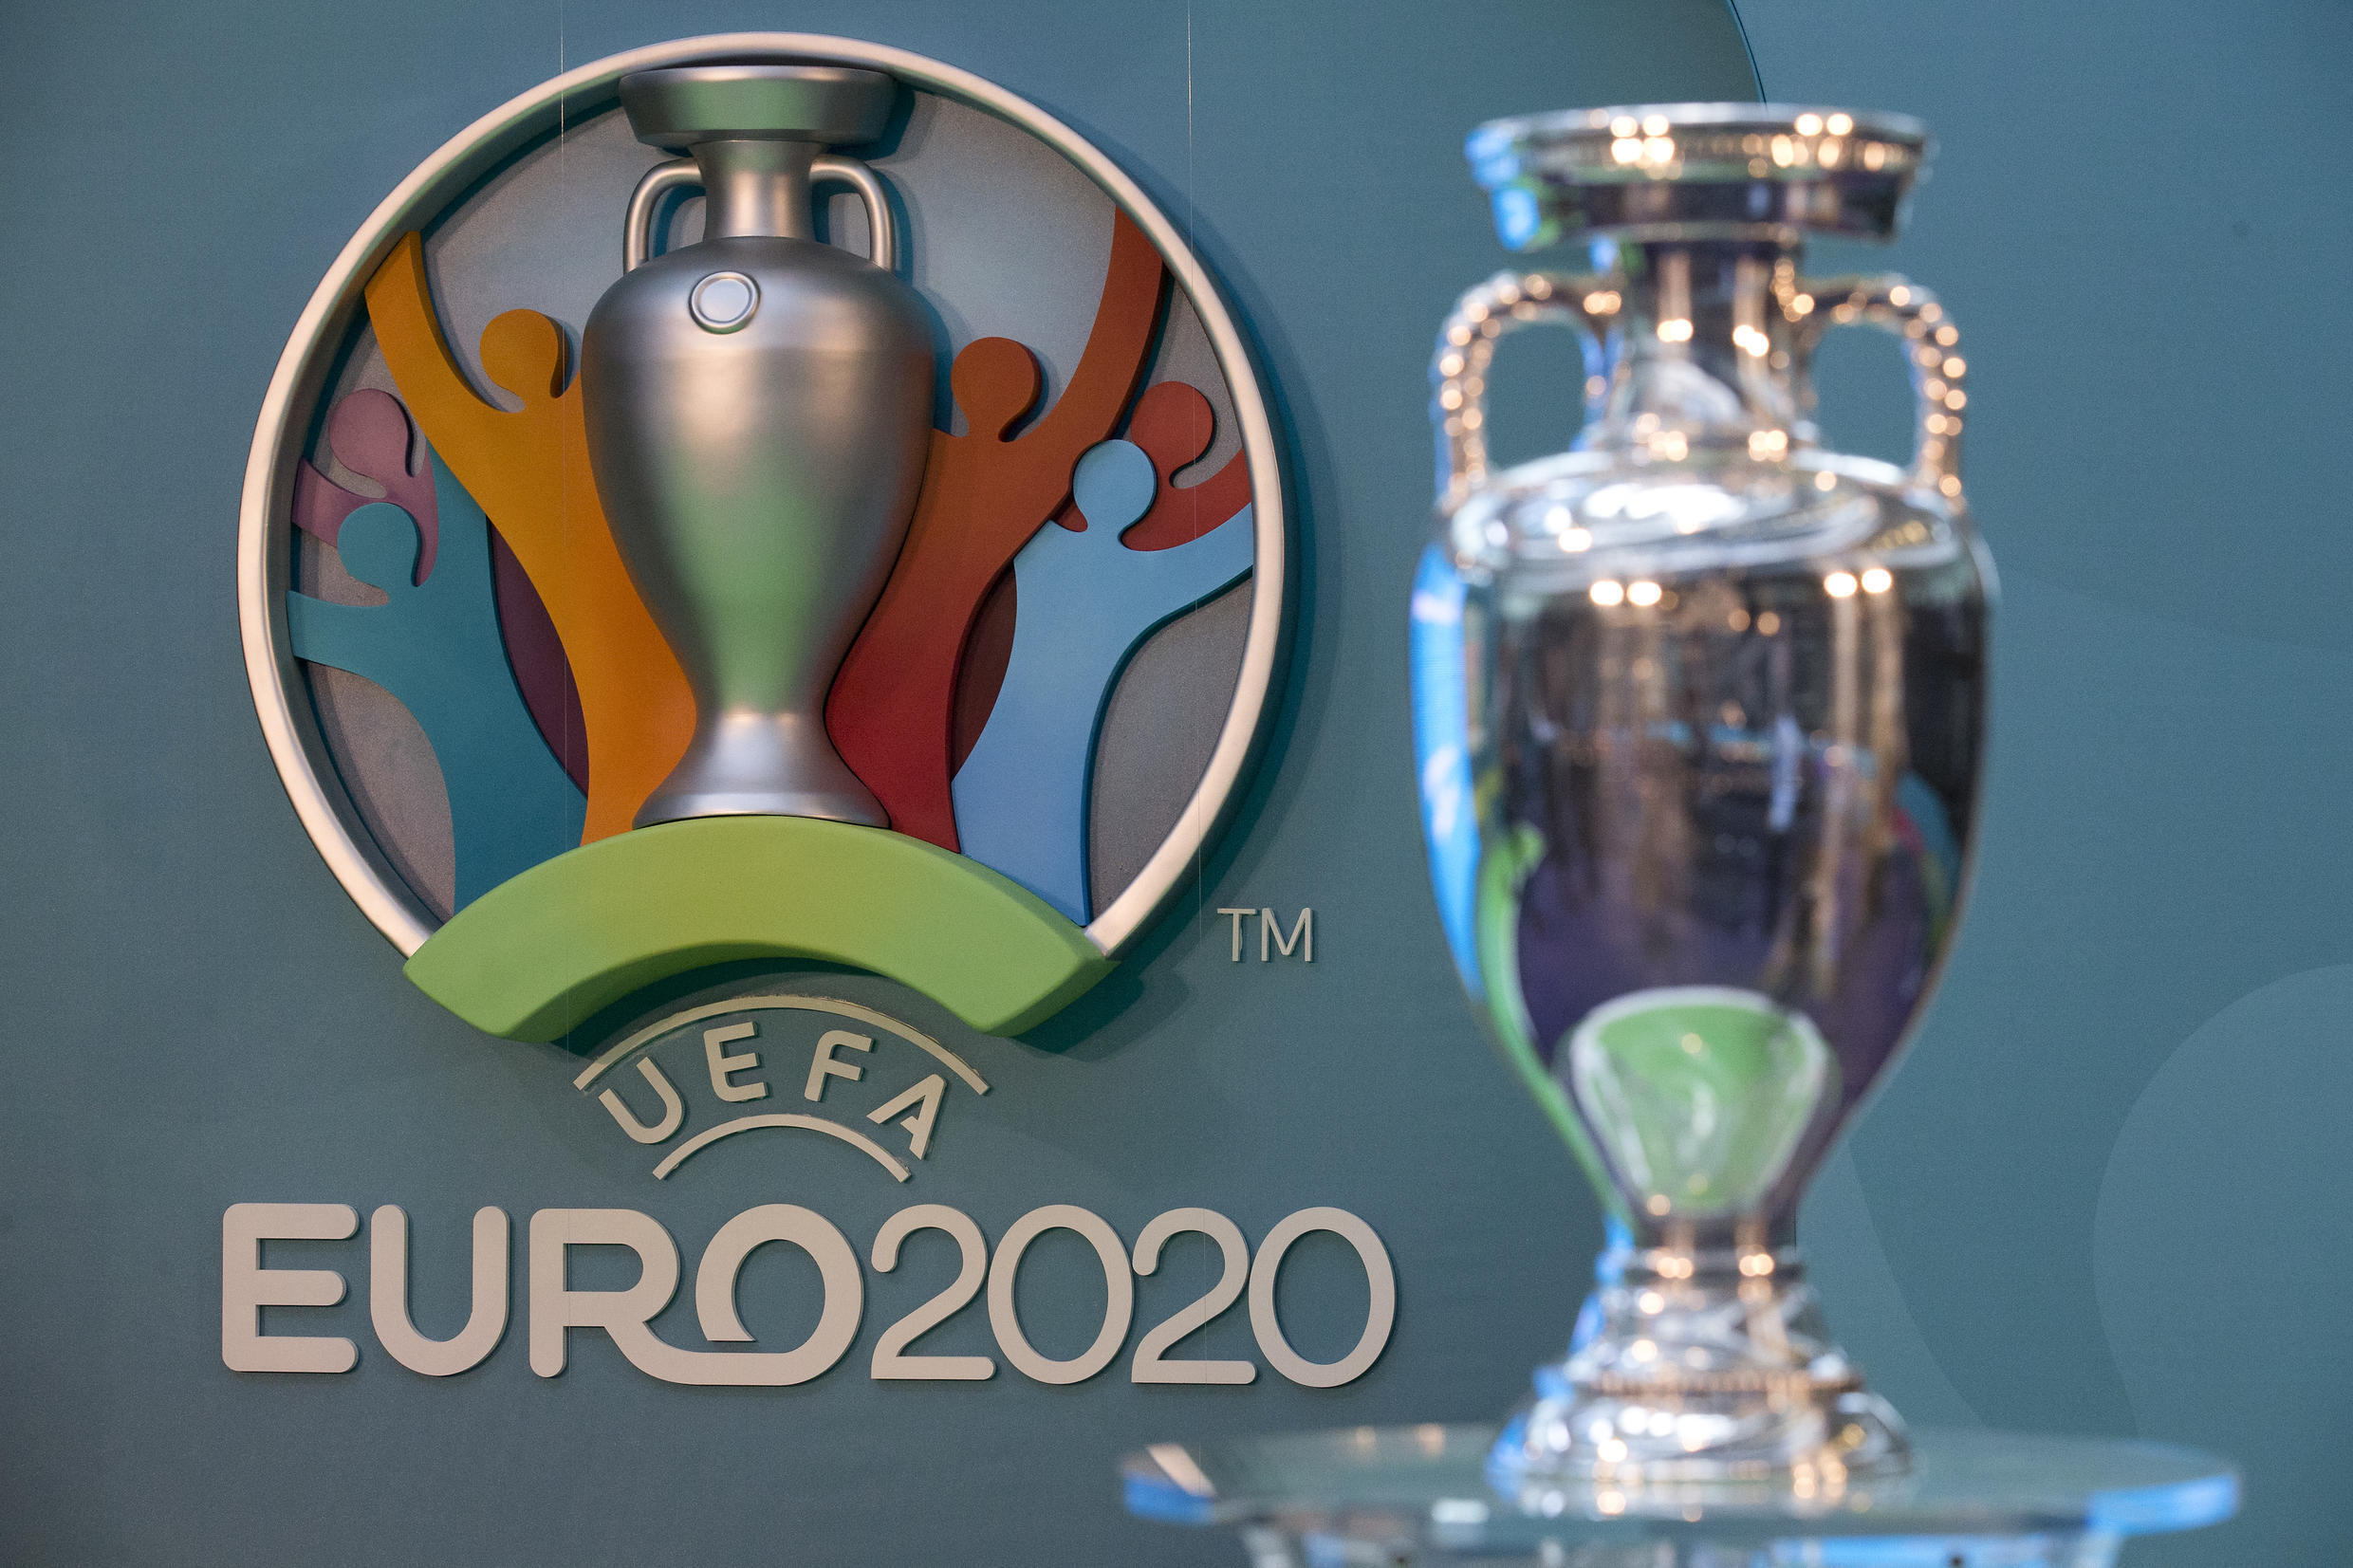 The fate of Euro 2020 hangs in the balance ahead of a meeting of European football's powerbrokers